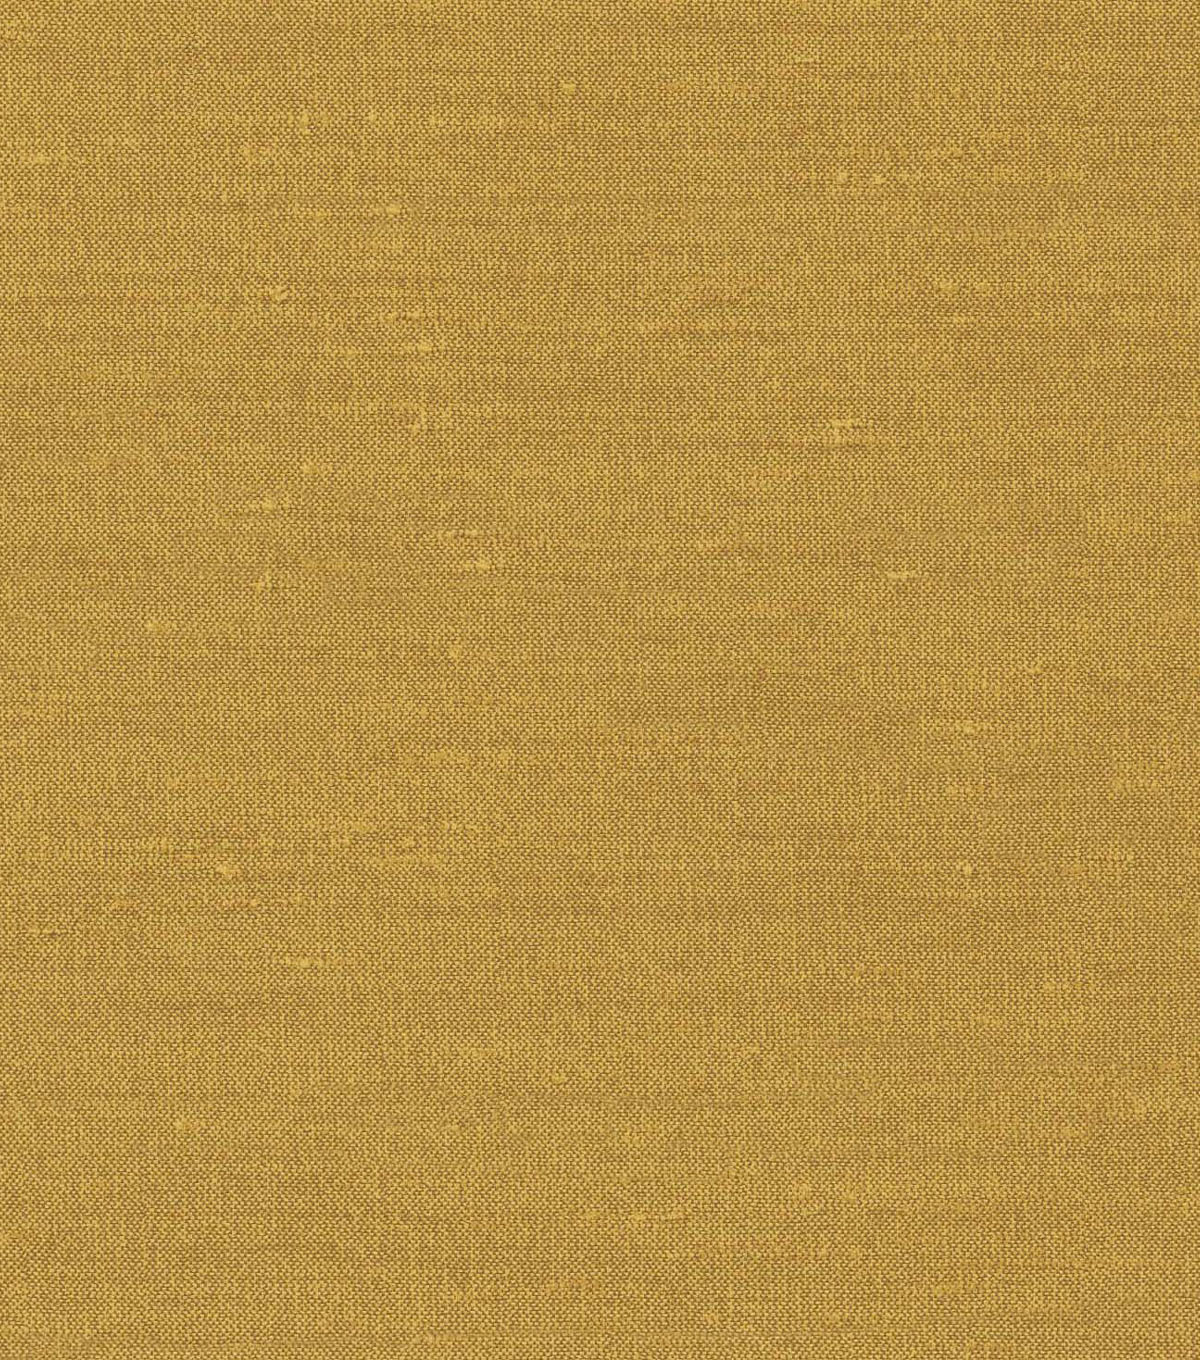 Home Decor 8\u0022x8\u0022 Fabric Swatch-HGTV Home Dazzler Saffron